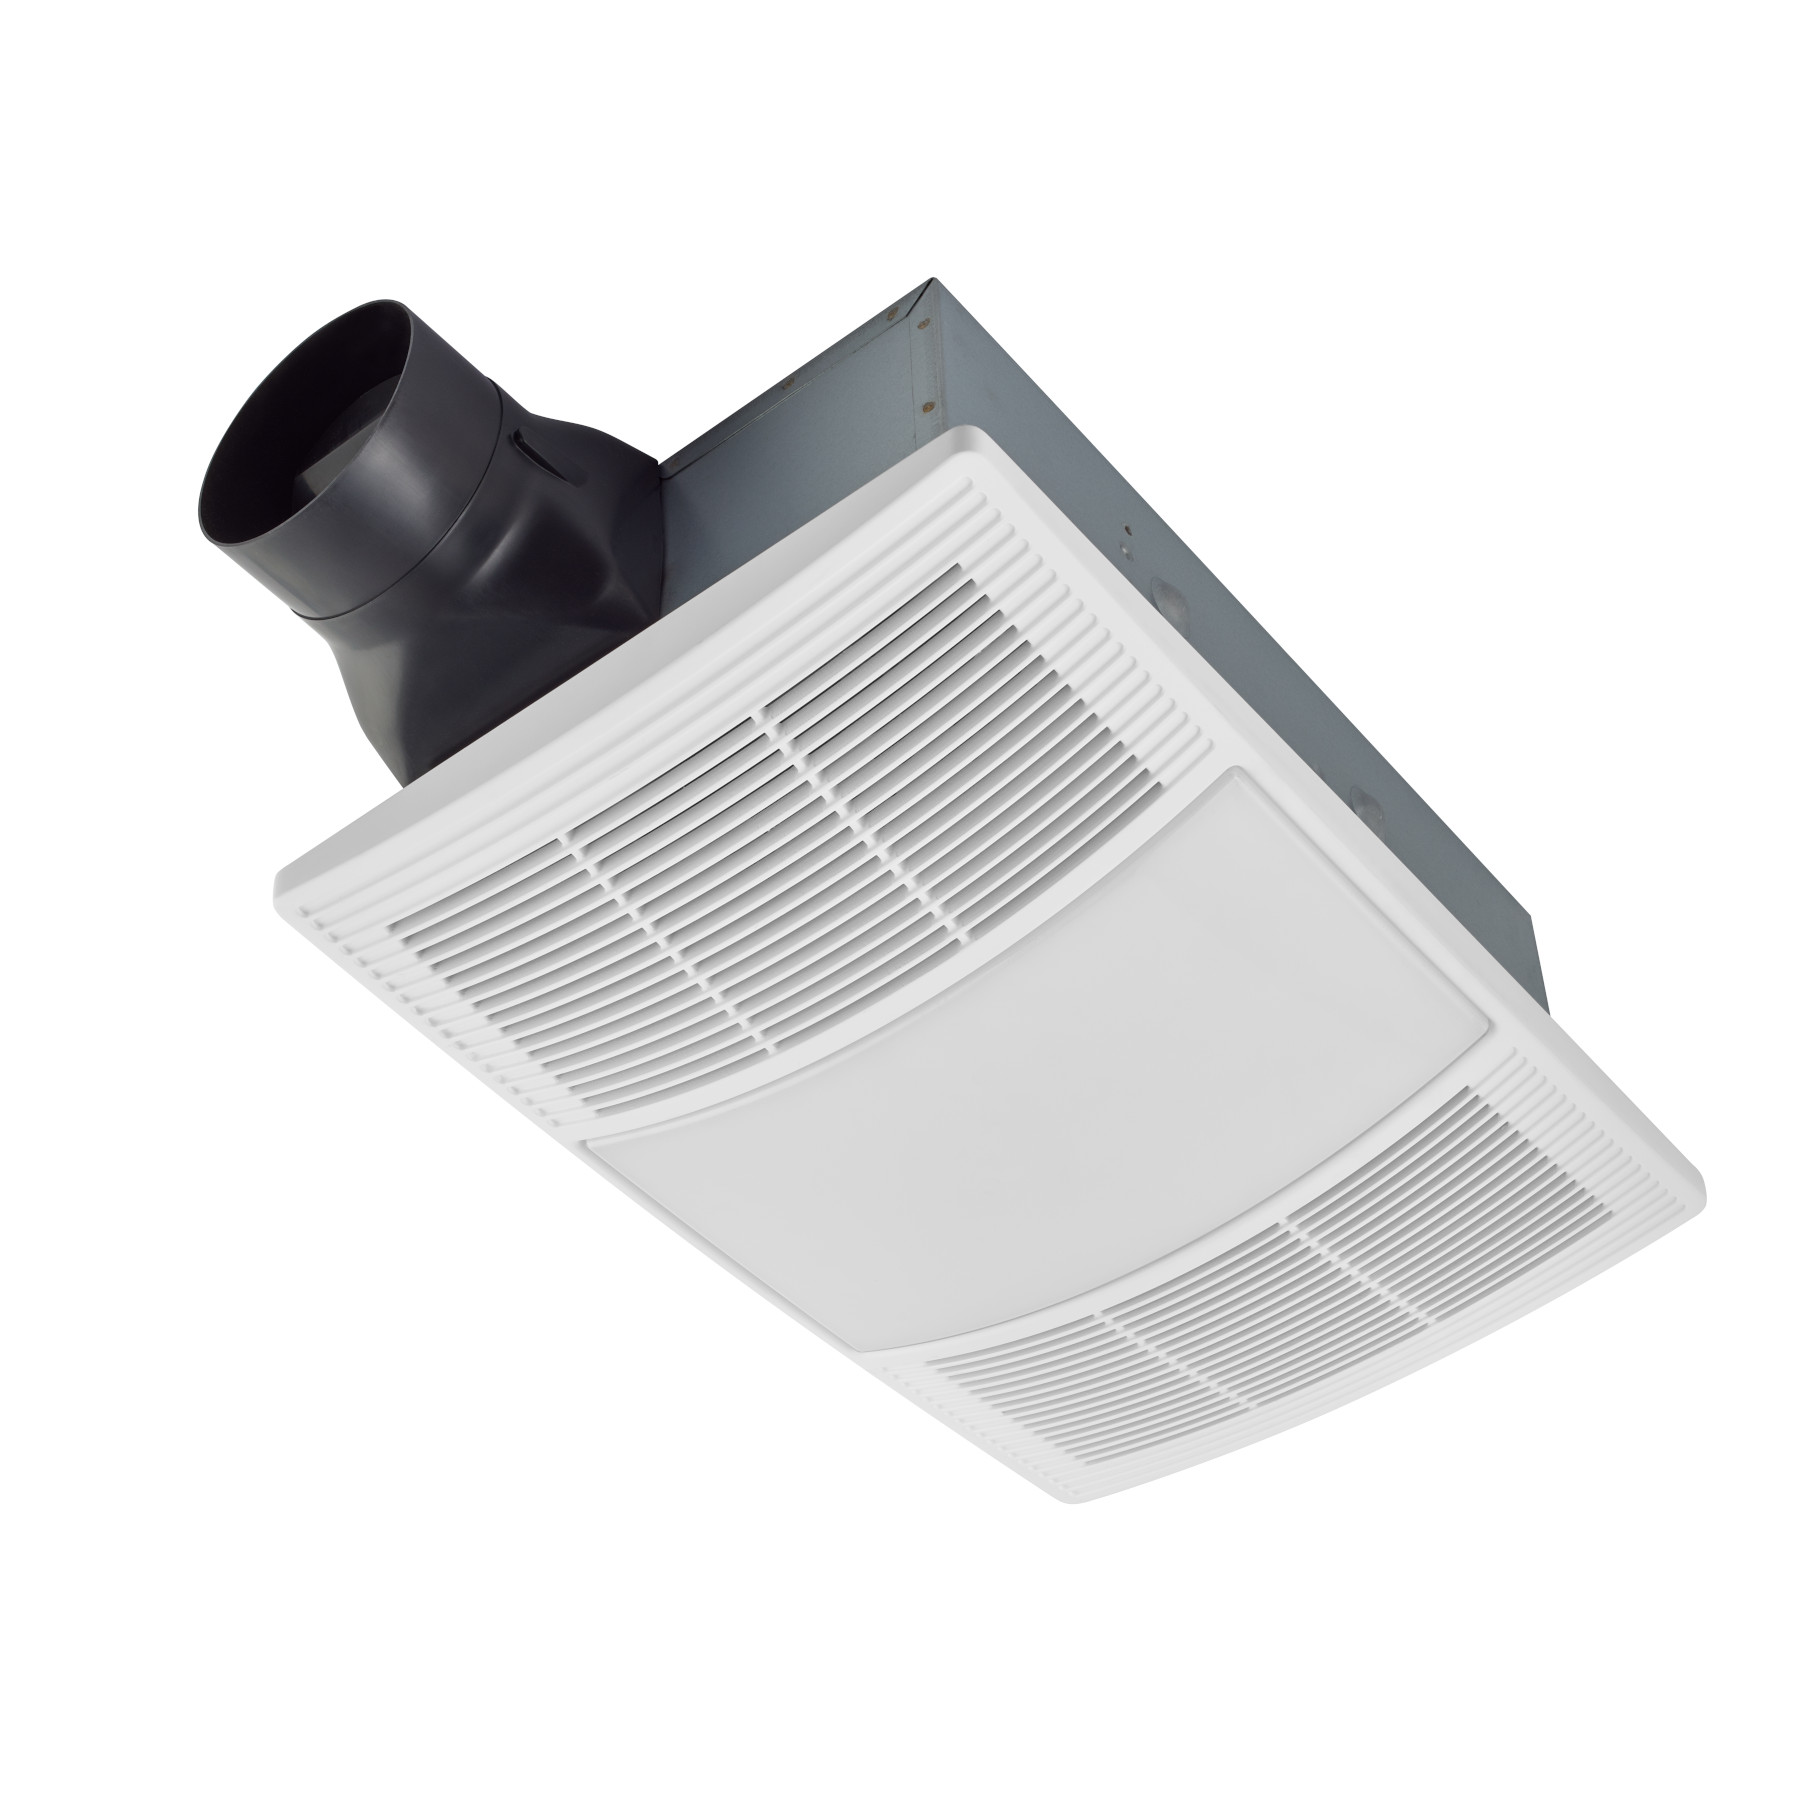 Bath And Exhaust Ventilation Fans With, Exhaust Fan And Heater For Bathroom